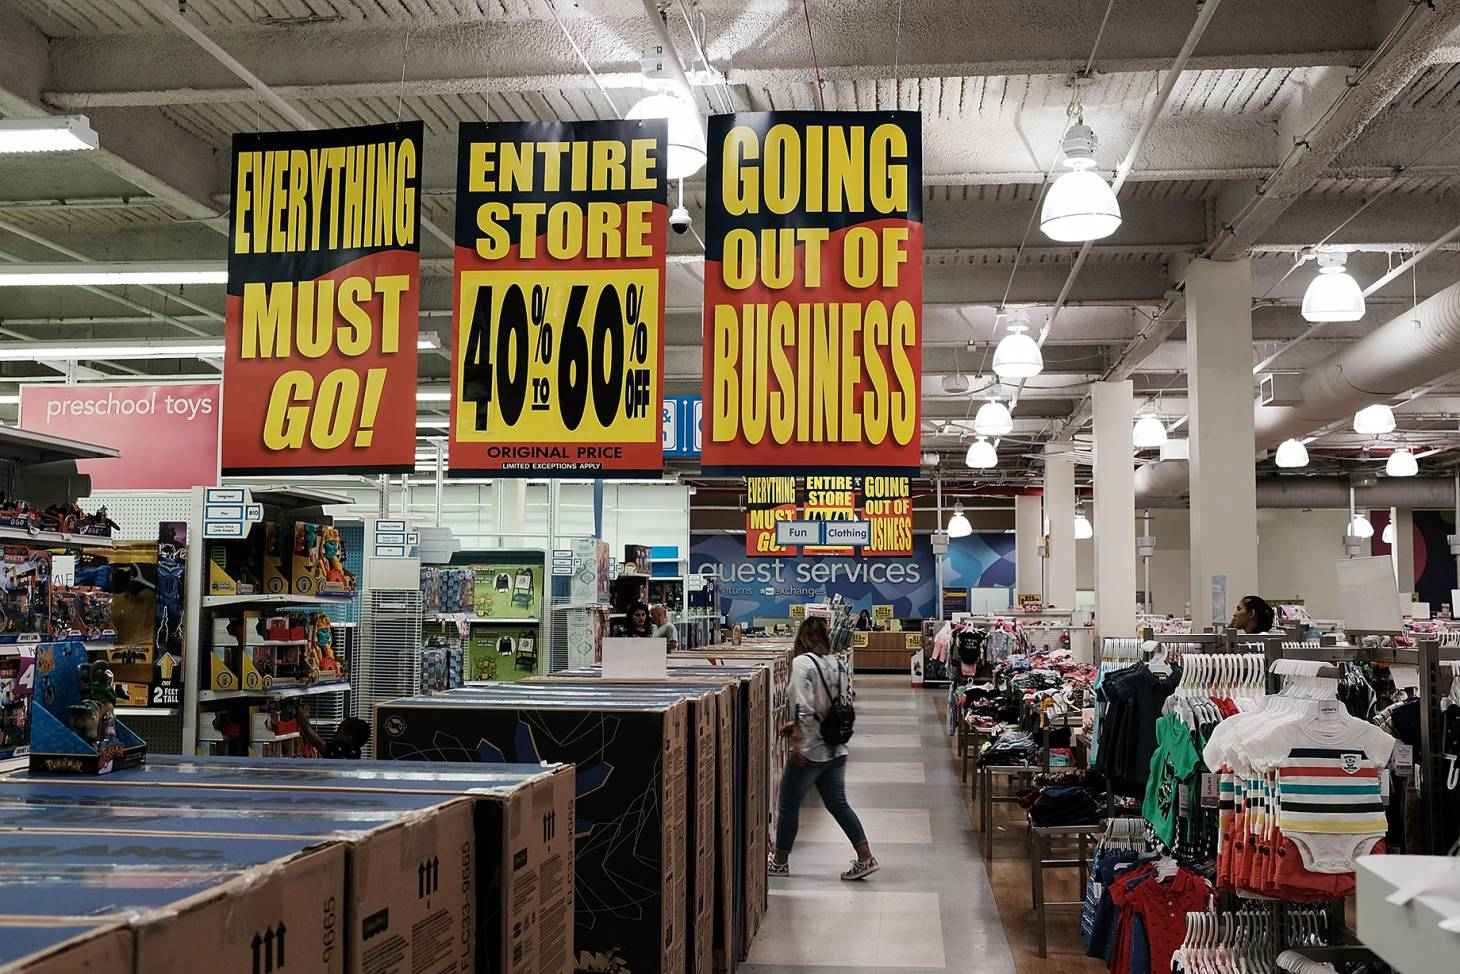 b1821e96e In addition to toy-category expansion at big-box names JCPenney, Kmart,  Sears, Target and Walmart, other sizable chains announcing toy-department  growth are ...